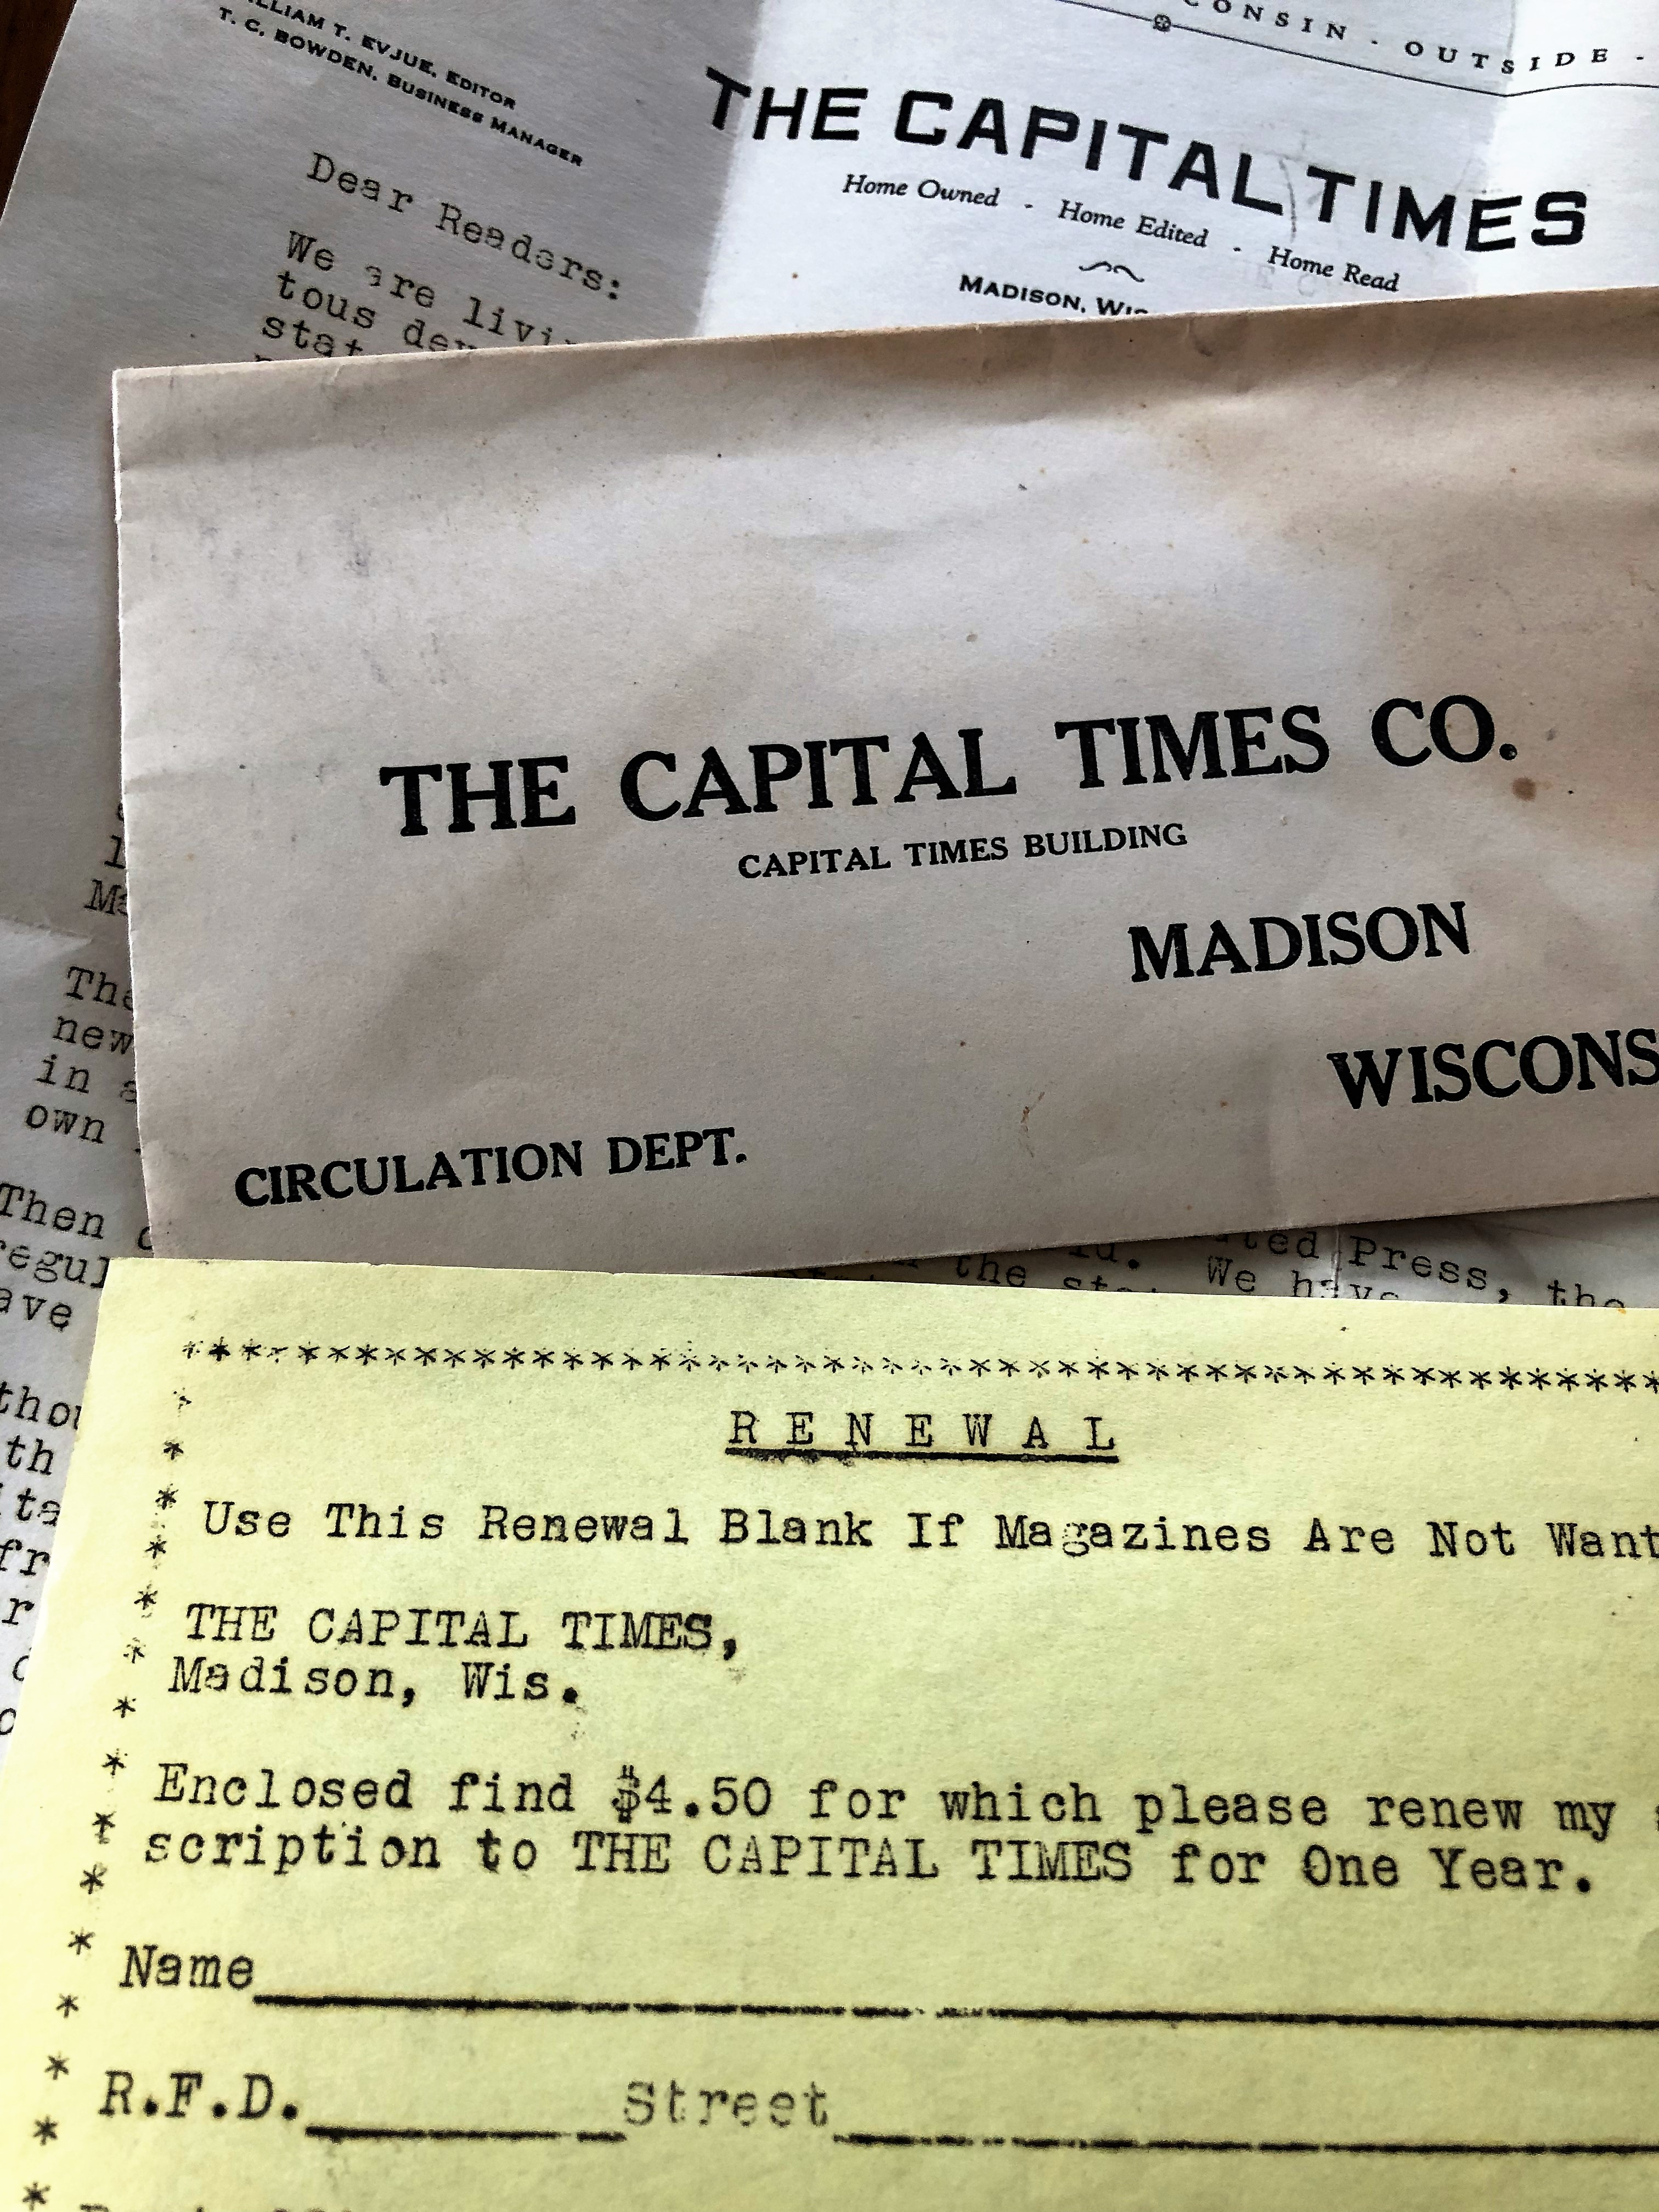 A circulation letter from the Capital Times newspaper.